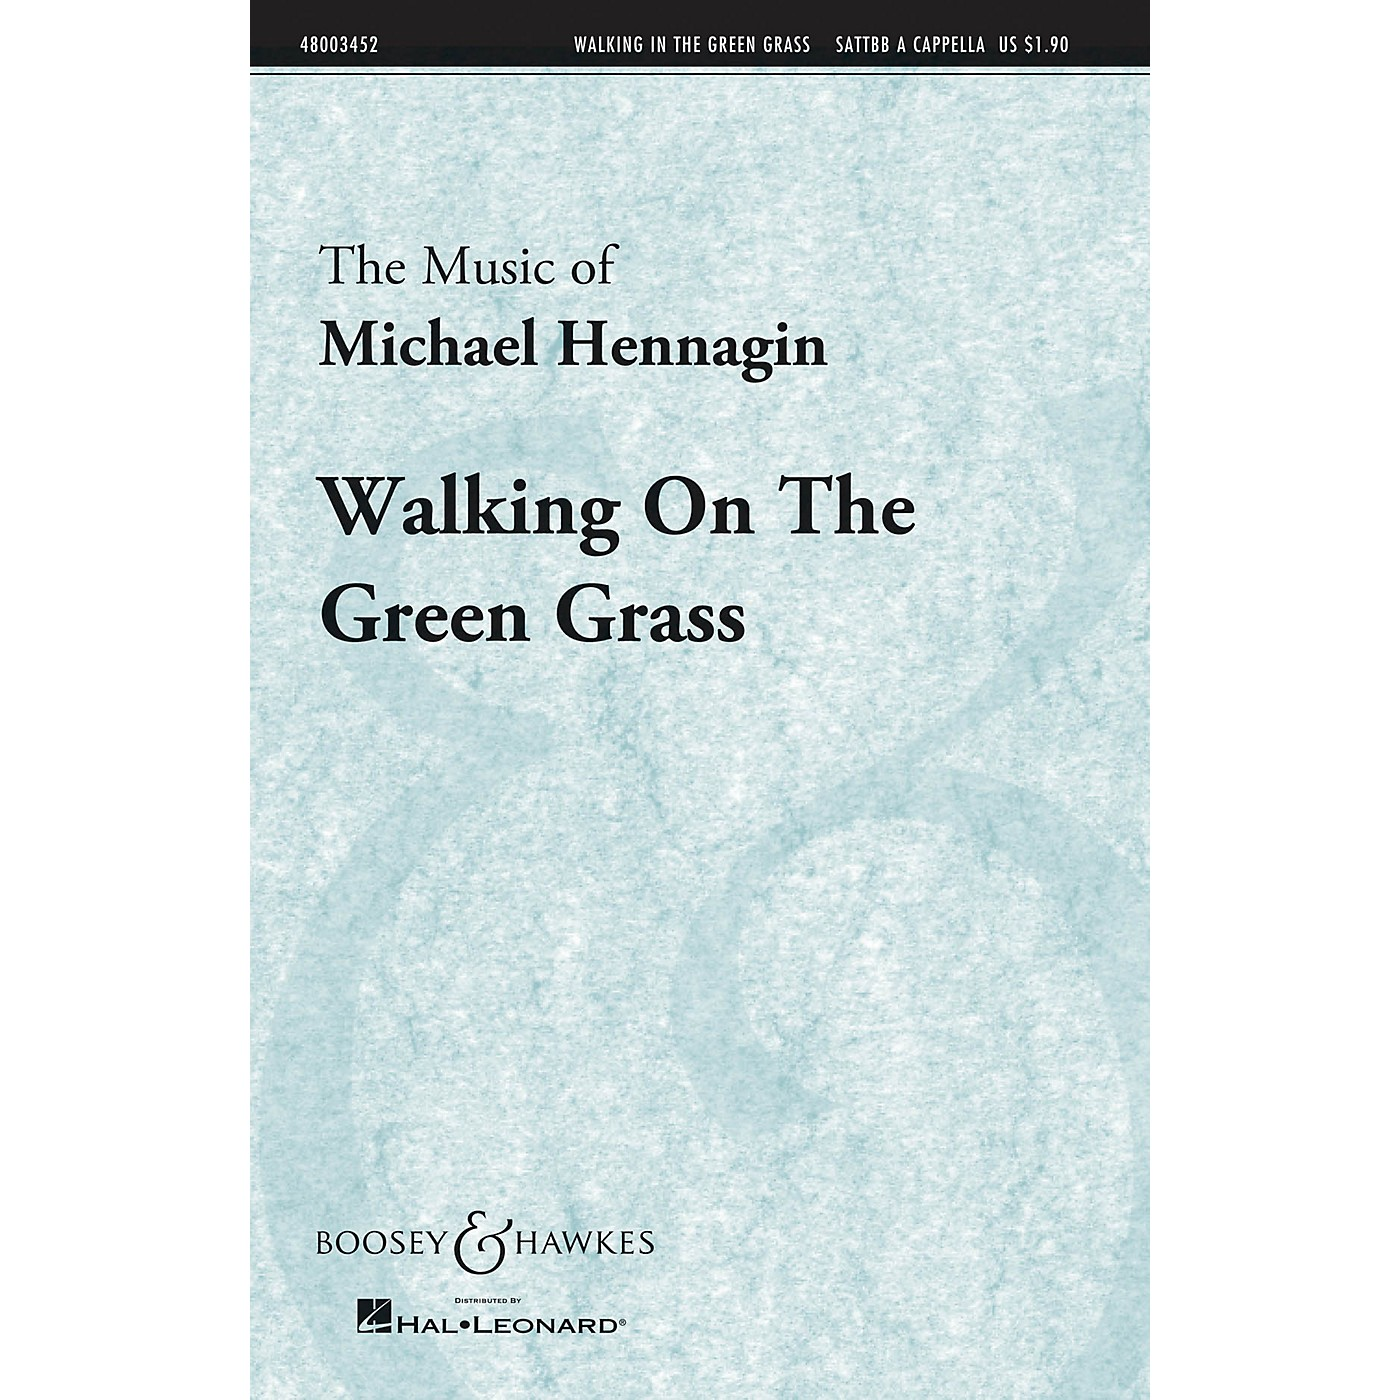 Boosey and Hawkes Walking On the Green Grass (Boosey & Hawkes Sacred Choral) SATTBB A Cappella composed by Michael Hennagin thumbnail